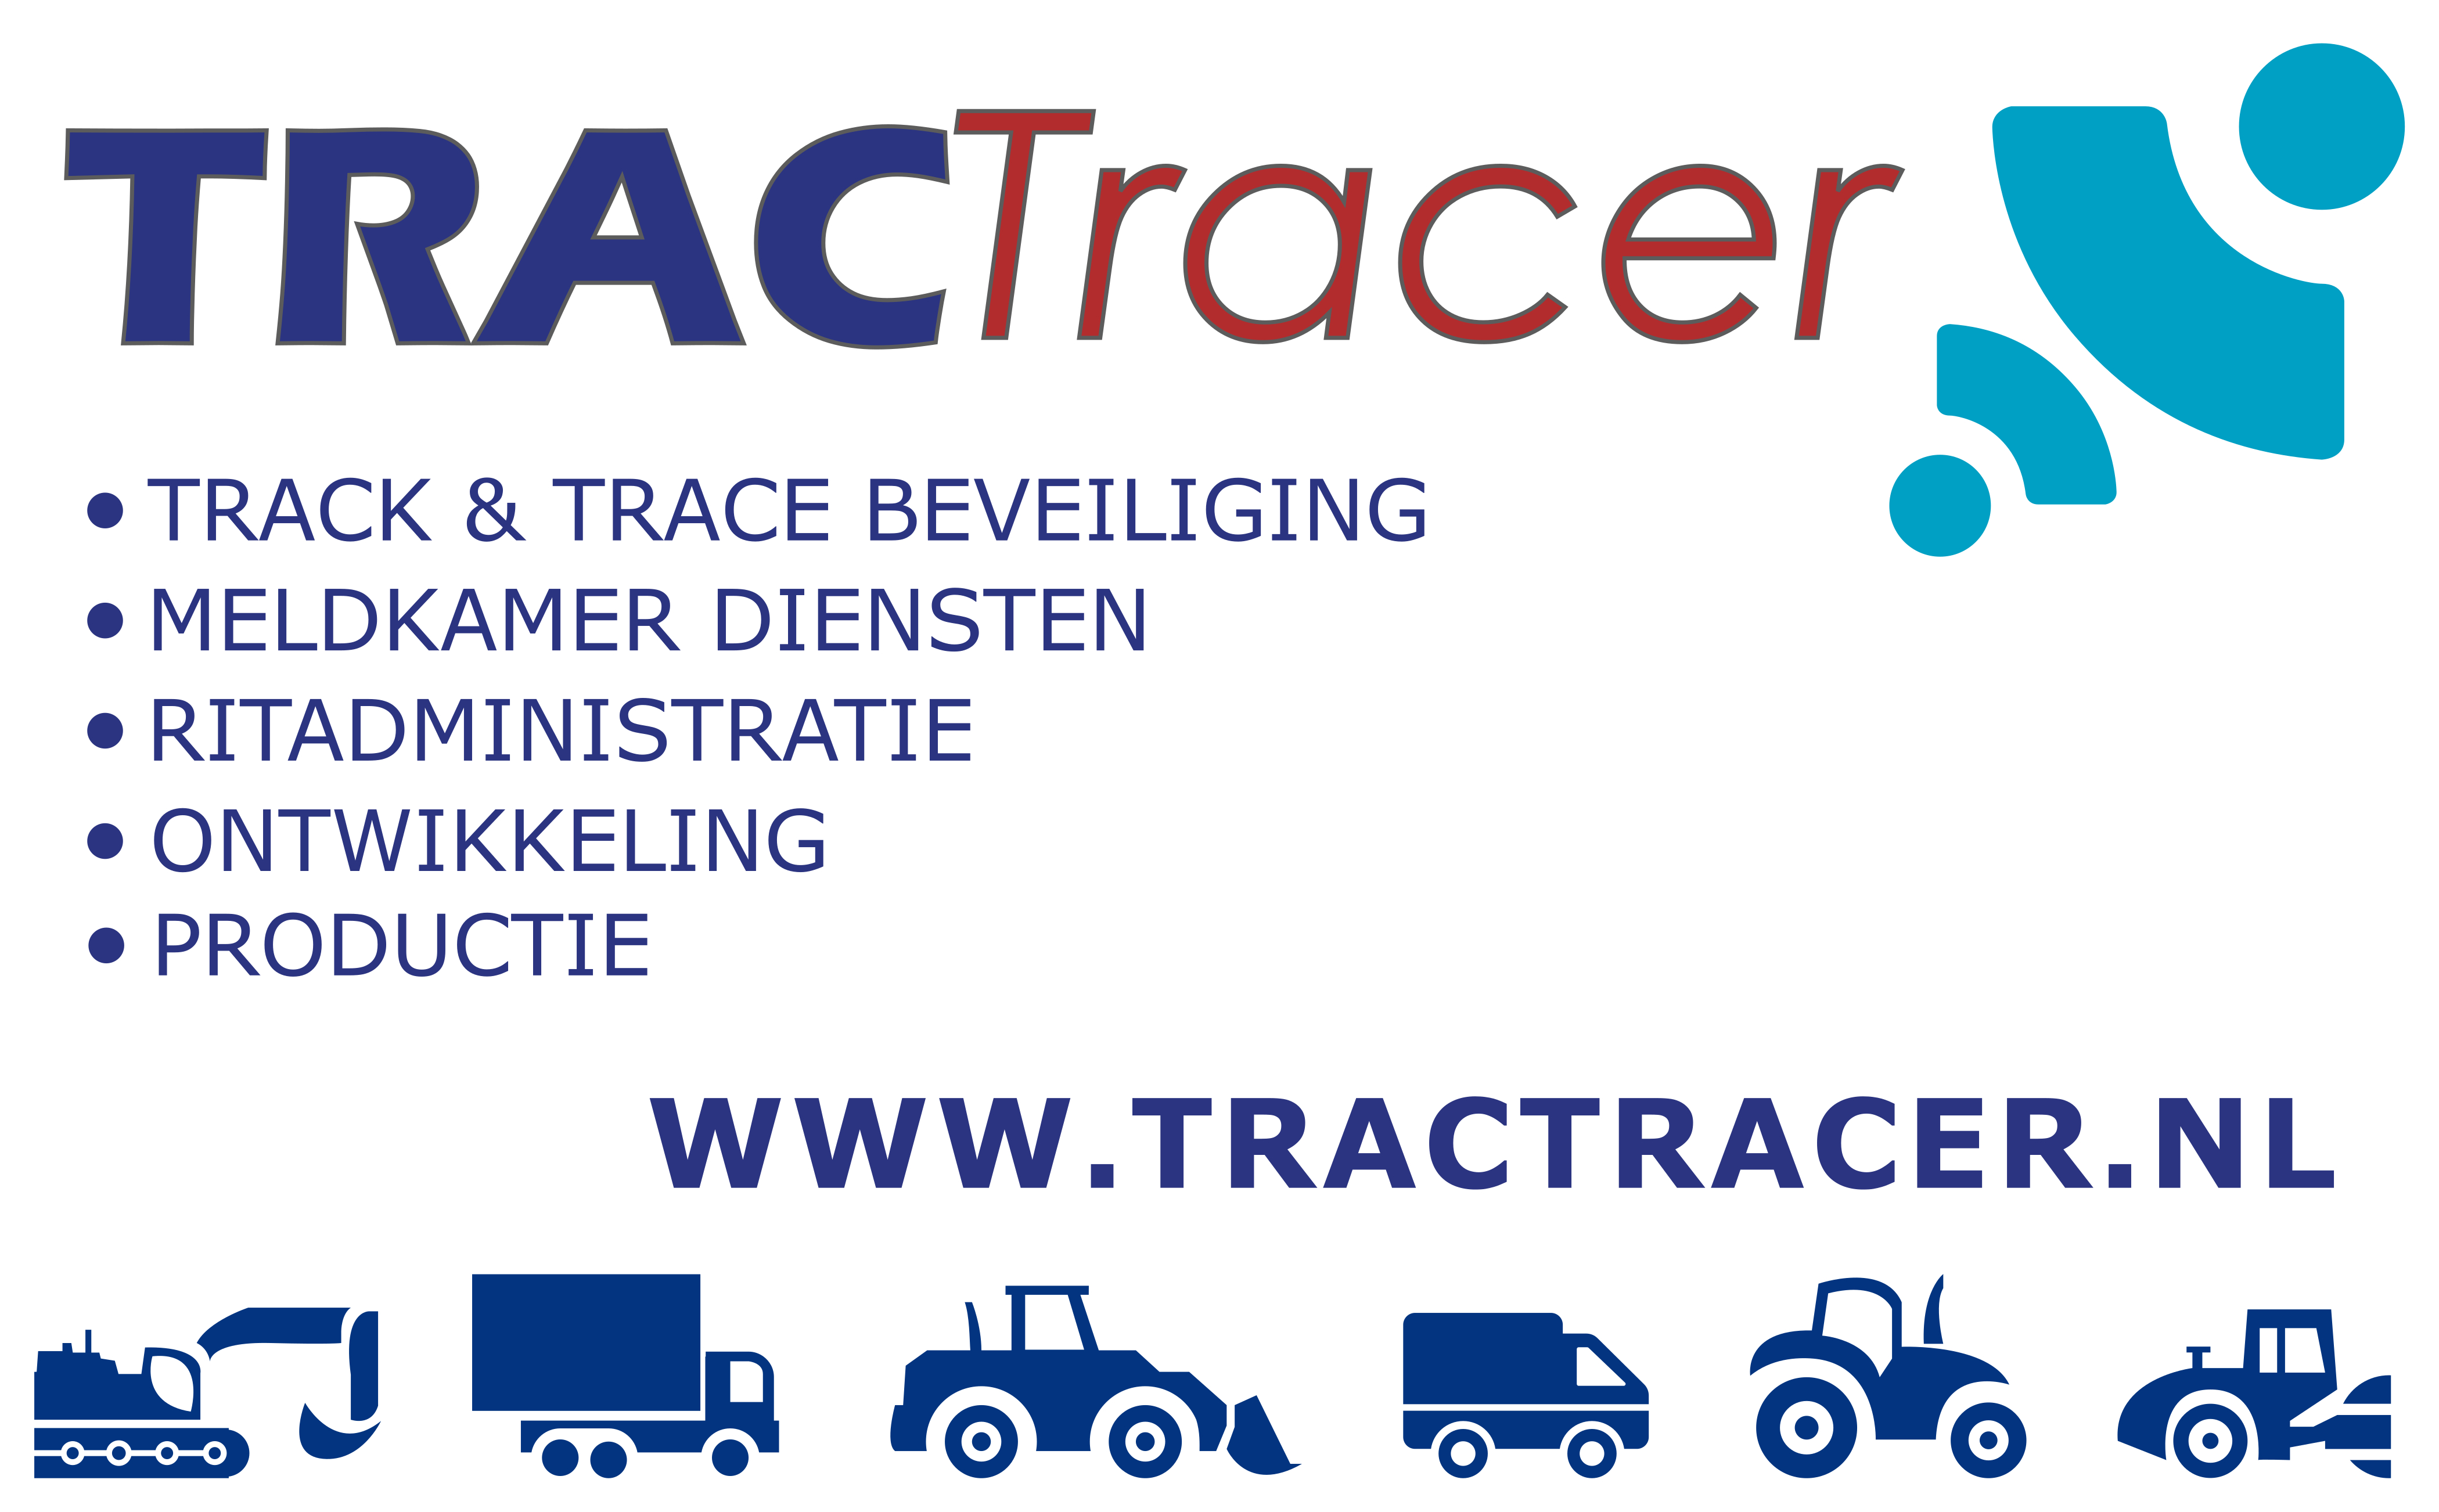 TracTracer_logo